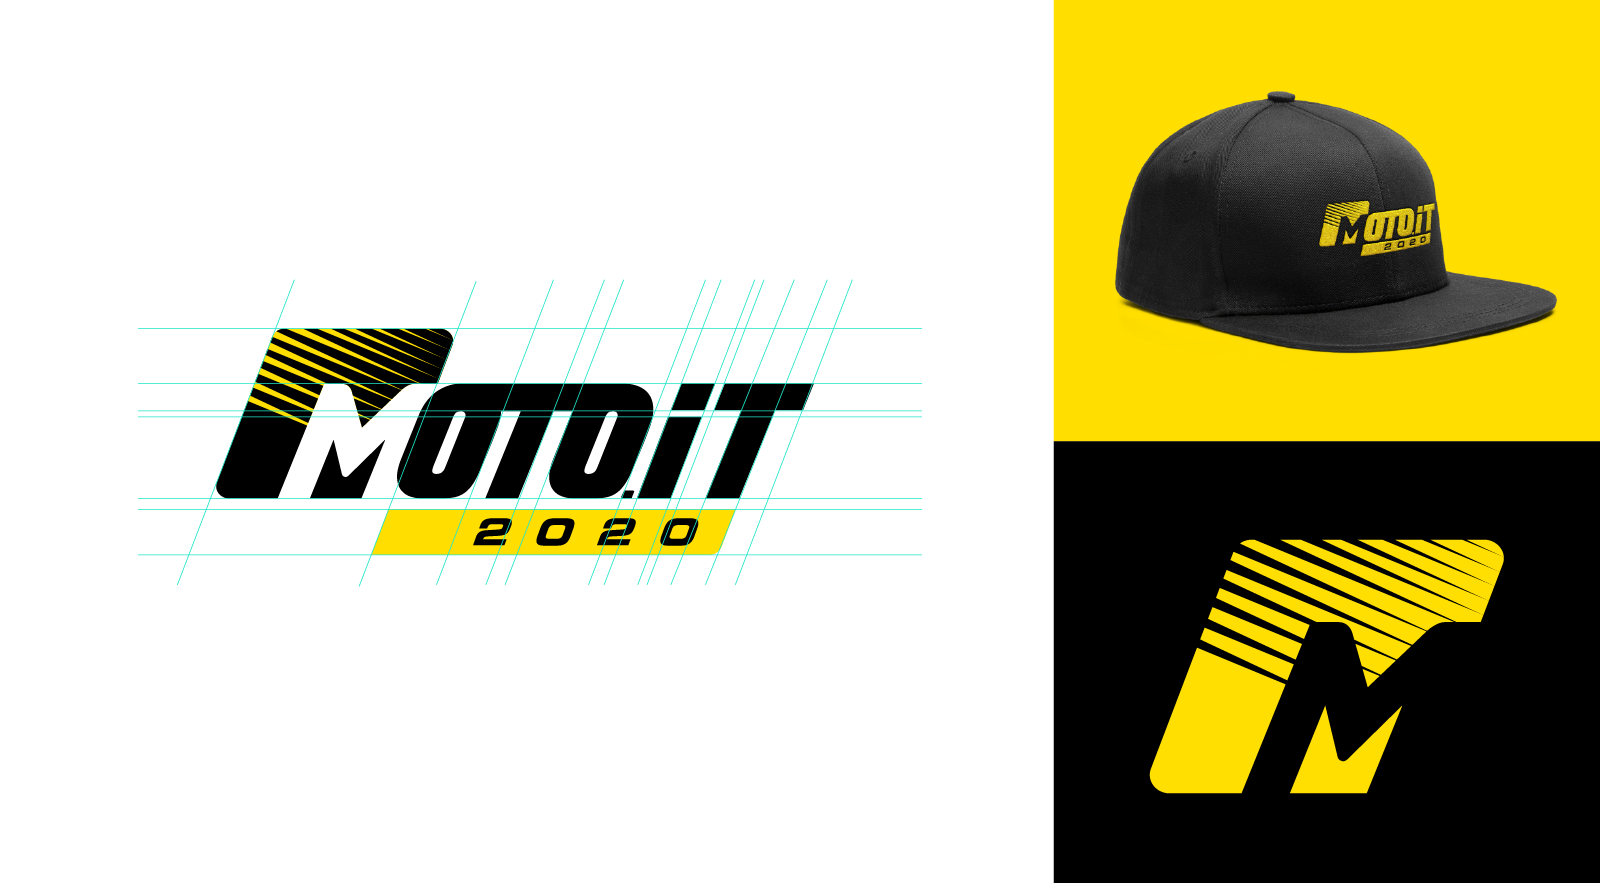 Moto.it cap and logo symbol concept